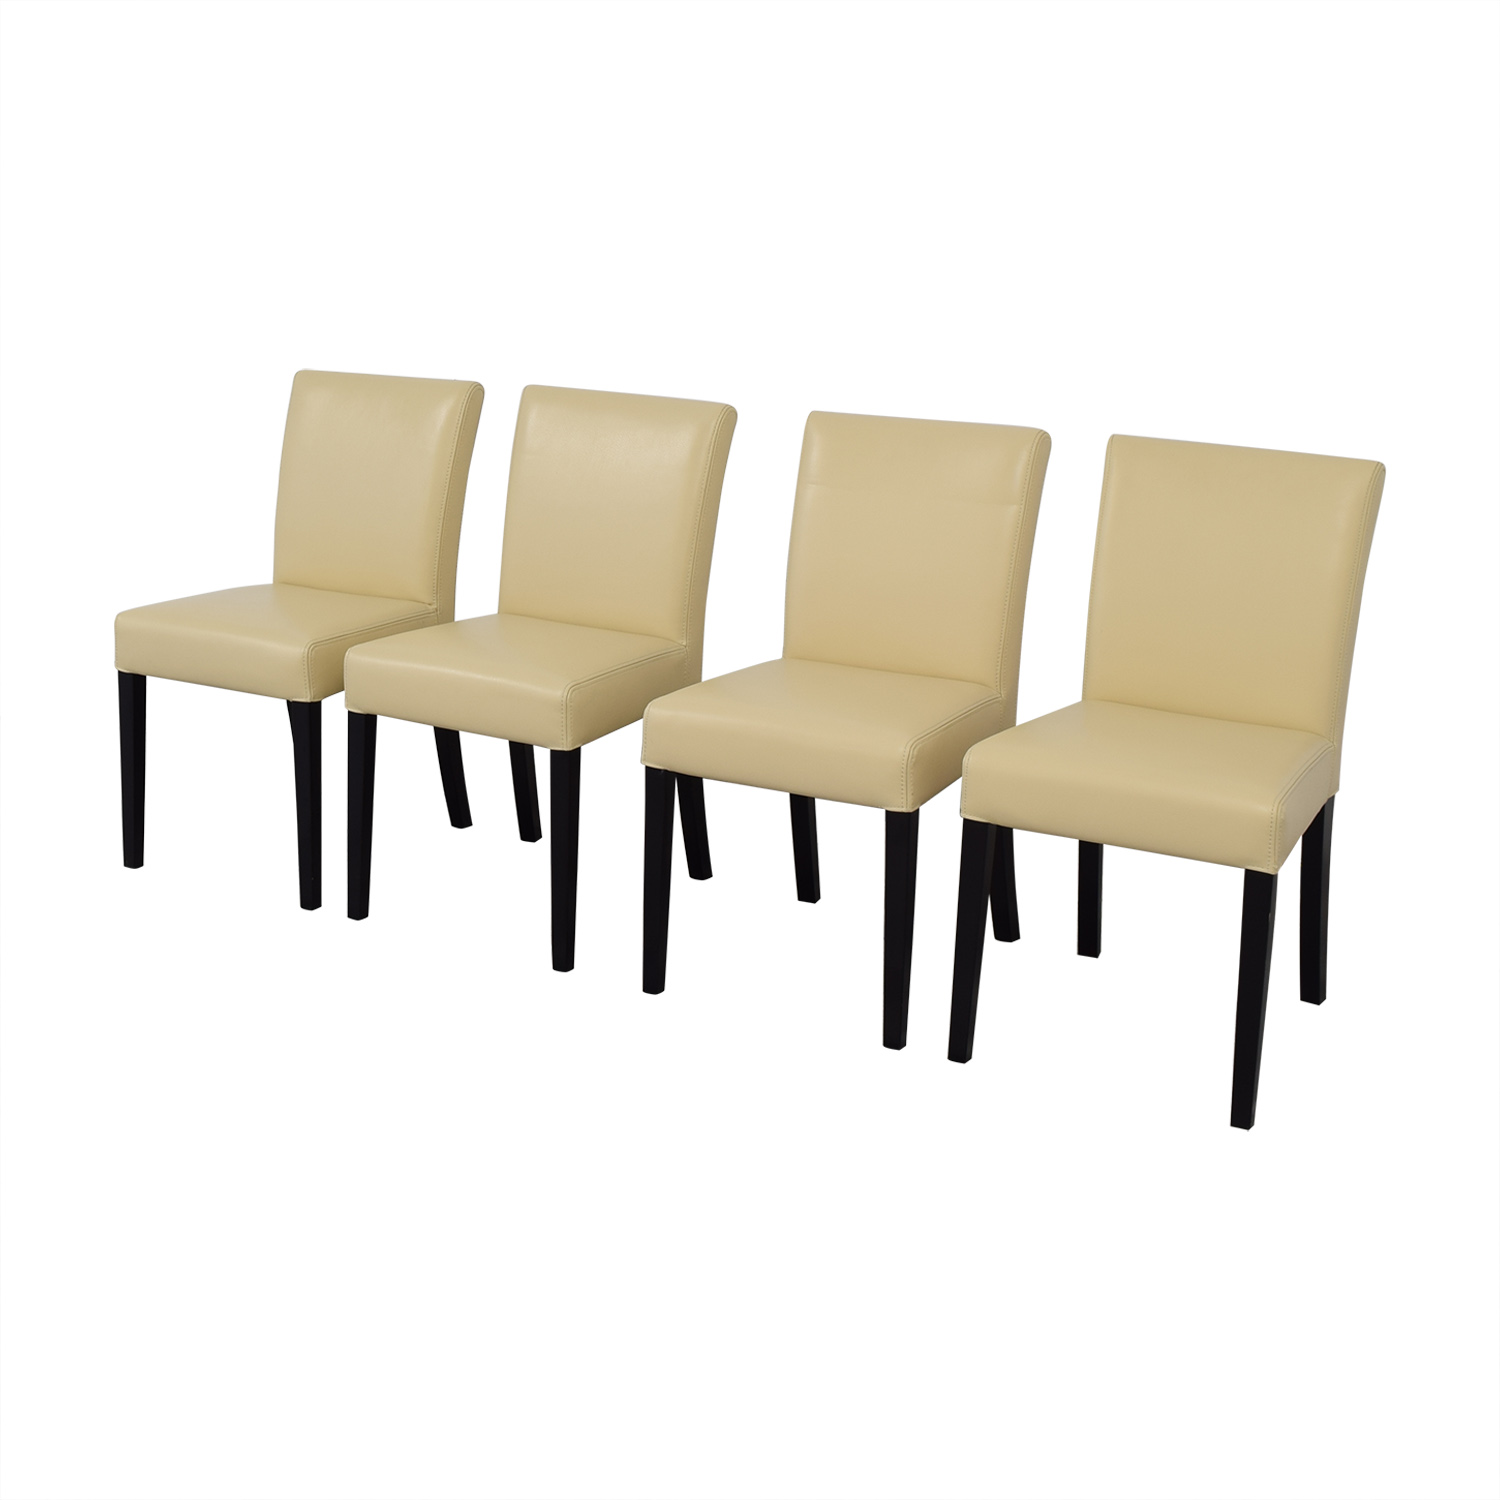 shop Crate & Barrel Dining Chairs Crate & Barrel Dining Chairs